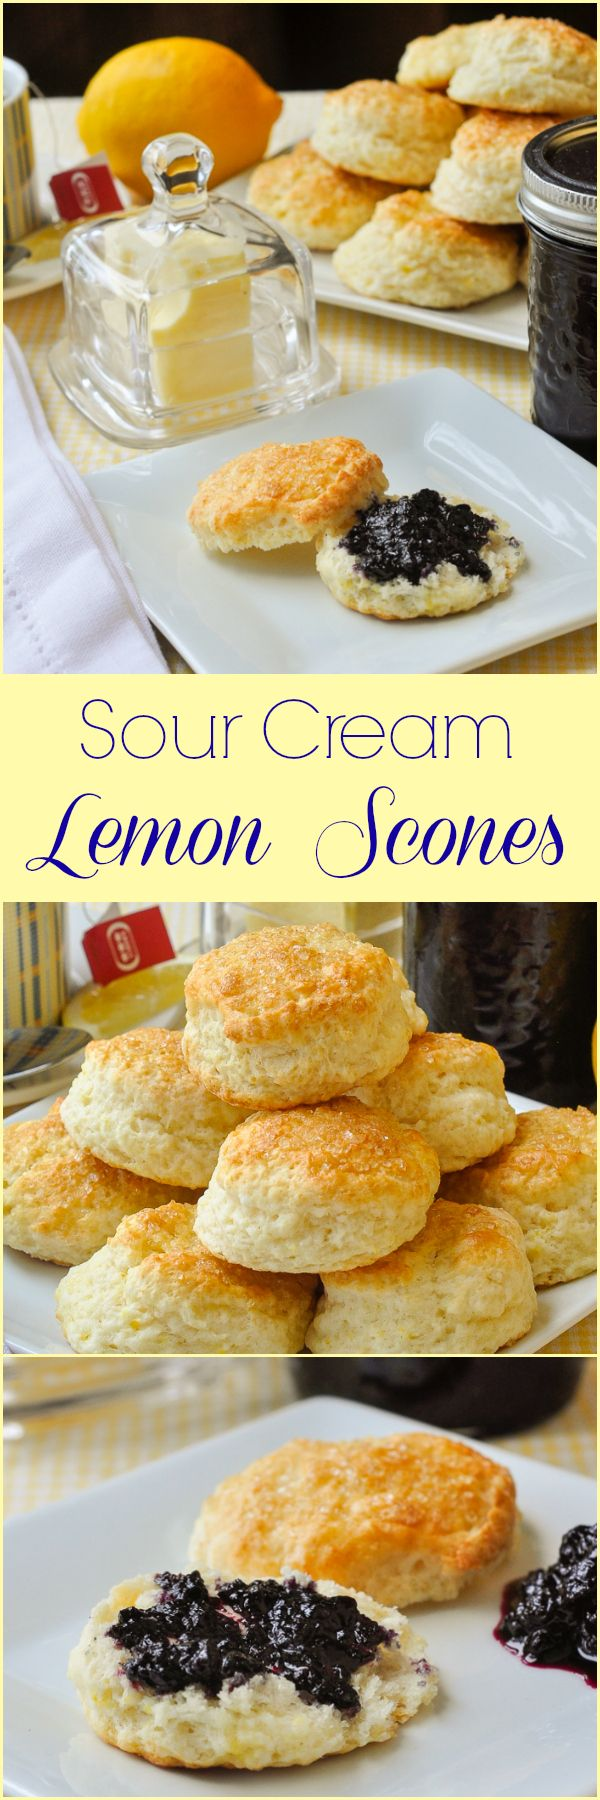 Sour Cream Lemon Scones. Beautifully light and tender little lemon scones that go together particularly well with wild blueberry jam. Perfect for weekend brunch or morning coffee.